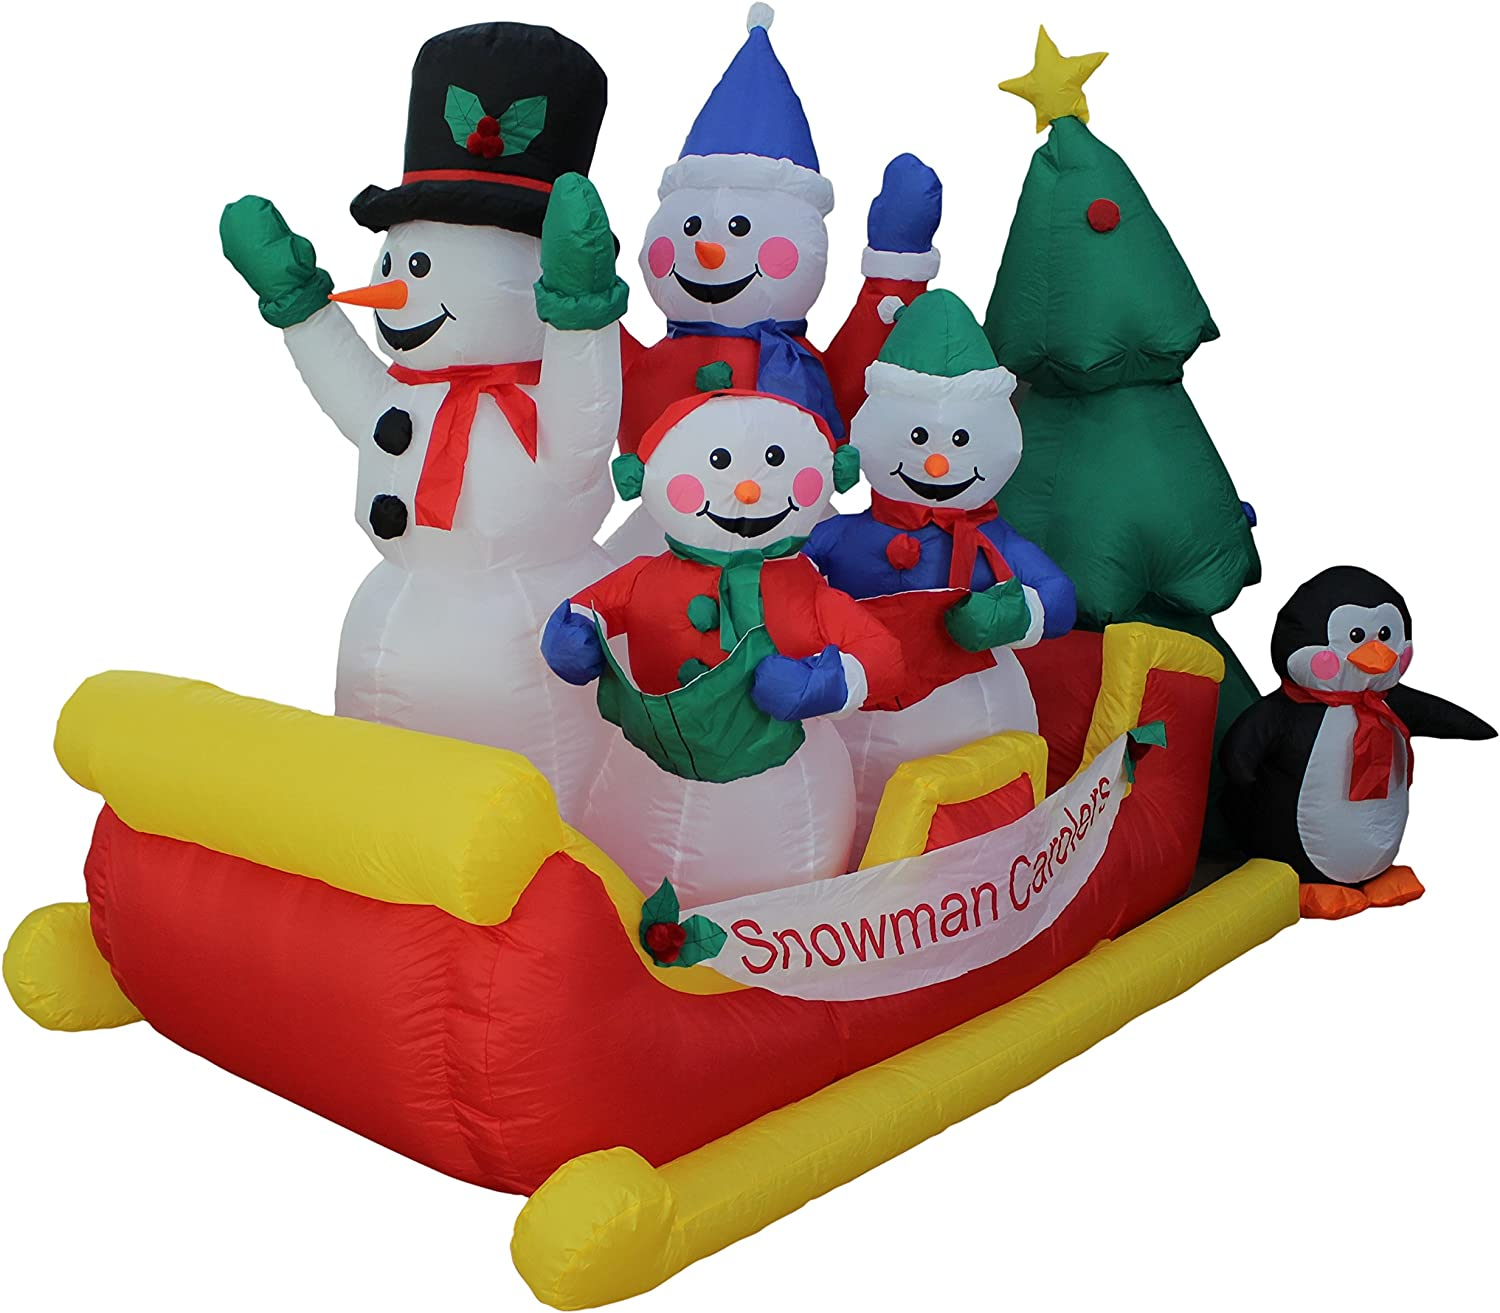 8 Foot Long Inflatable Snowman Family Penguin Christmas Tree on Sleigh Yard Decoration Lights Decor Outdoor Indoor Holiday Decorations, Blow up Lighted Yard Decor, Lawn Inflatables Home Family Outside